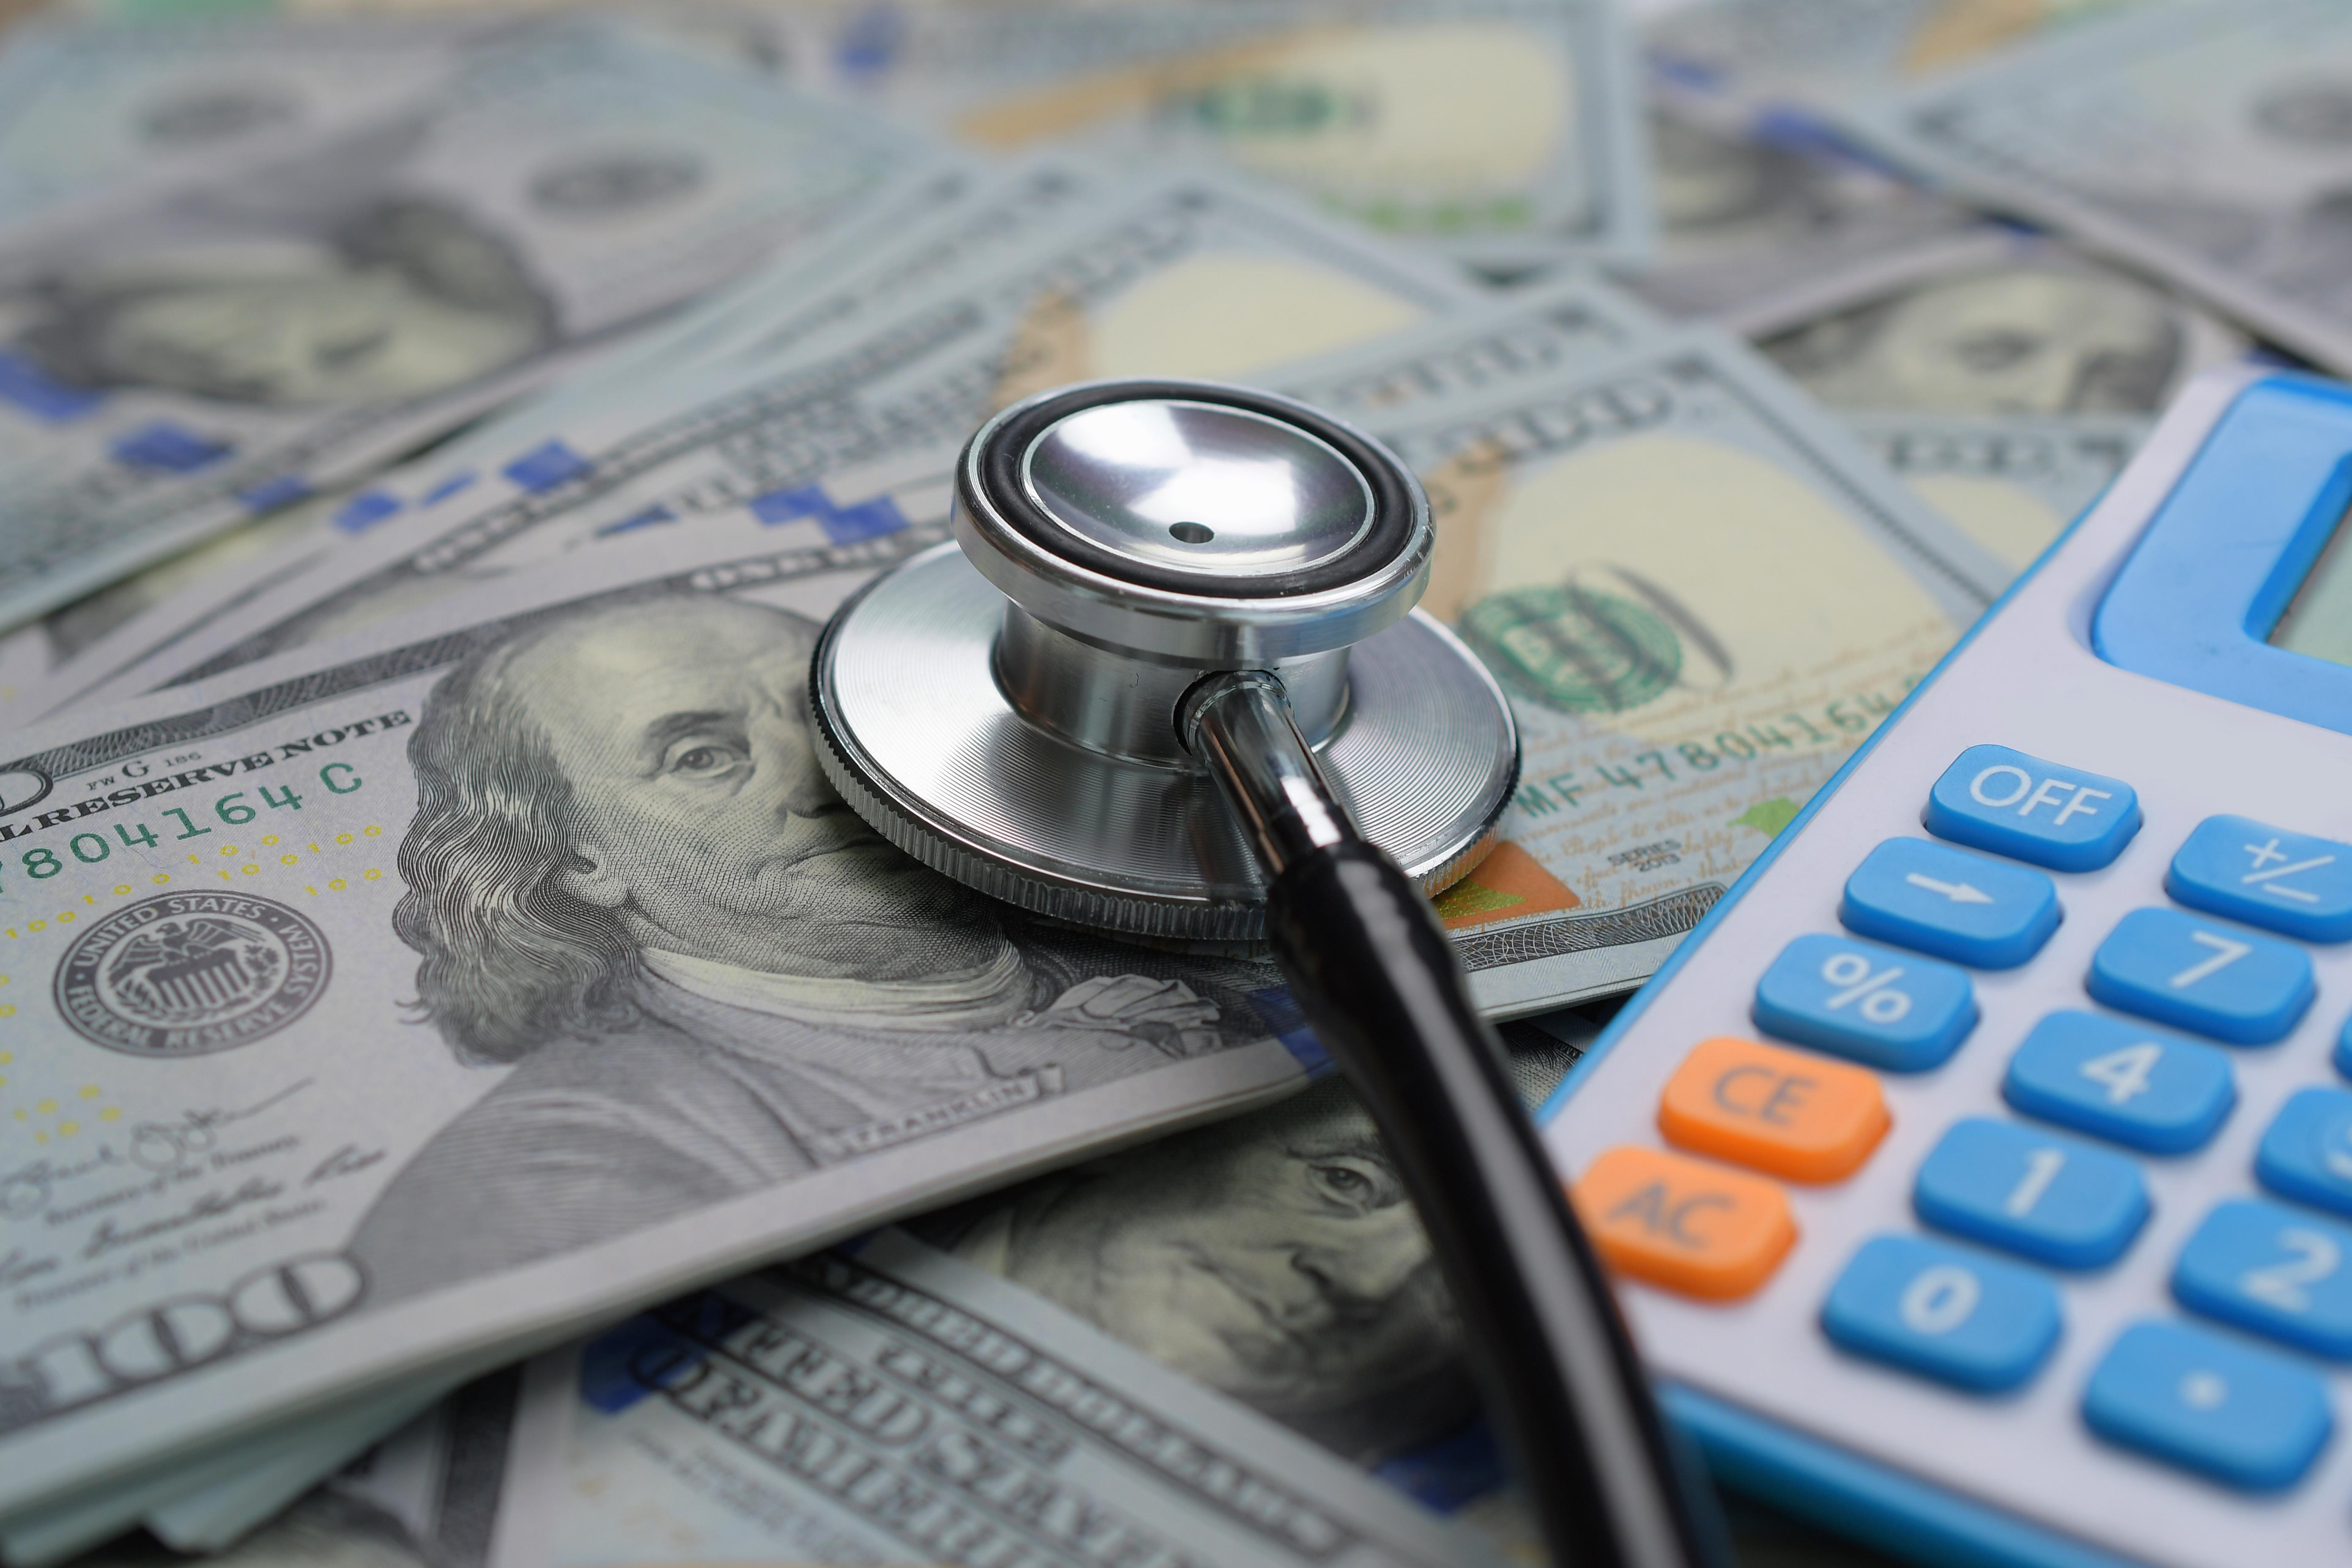 New IRS rules gives high deductible plans richer care benefits